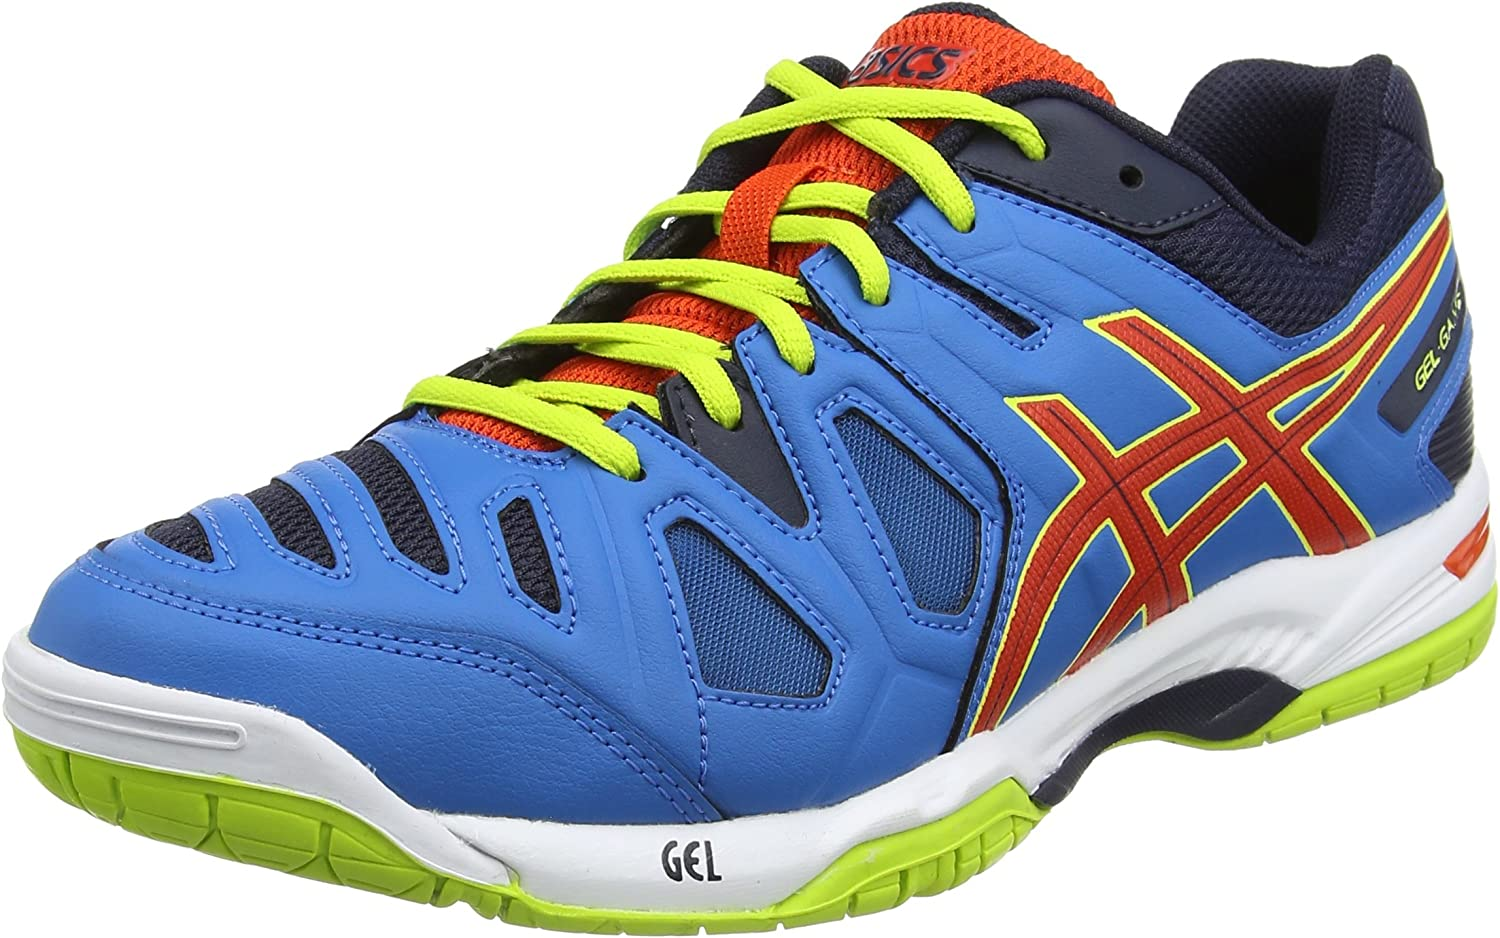 ASICS Gel-Game 5 Mens Tennis shoes E506Y Sneakers Trainers